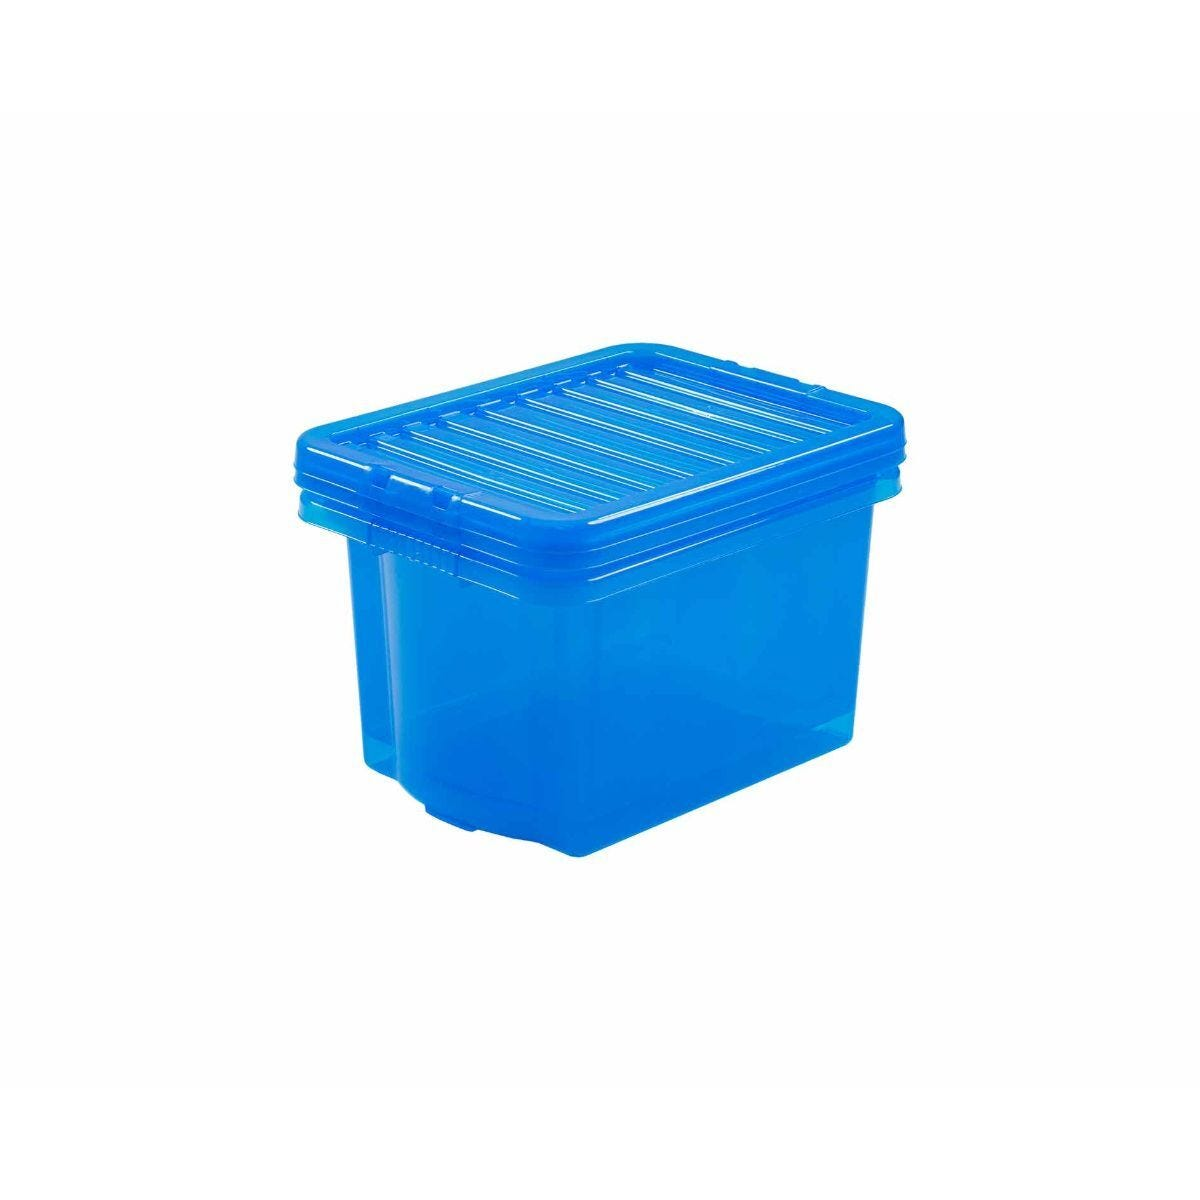 Wham Box and Lid 24 Litre Clear Pack of 3 Blue